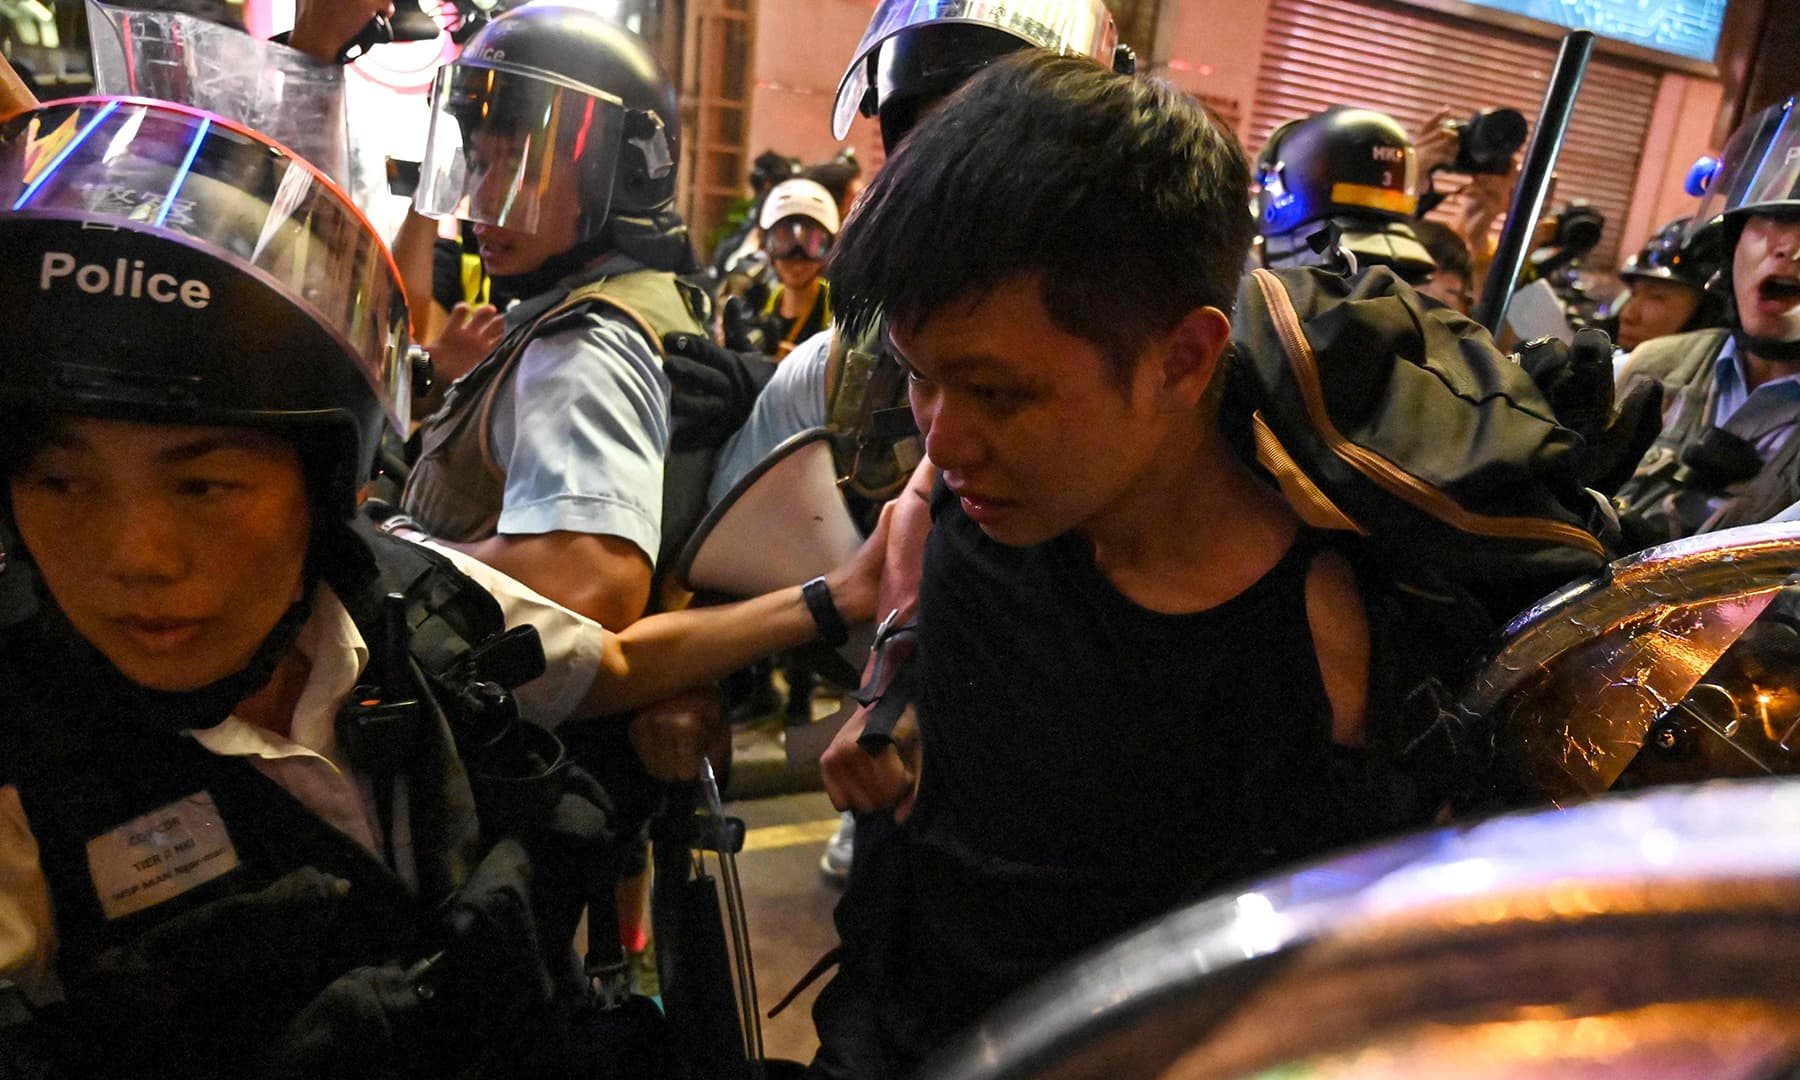 Police arrest protesters during a clash in the Mong Kok district in Kowloon after a march to the West Kowloon rail terminus against the proposed extradition bill in Hong Kong on July 7. — AFP